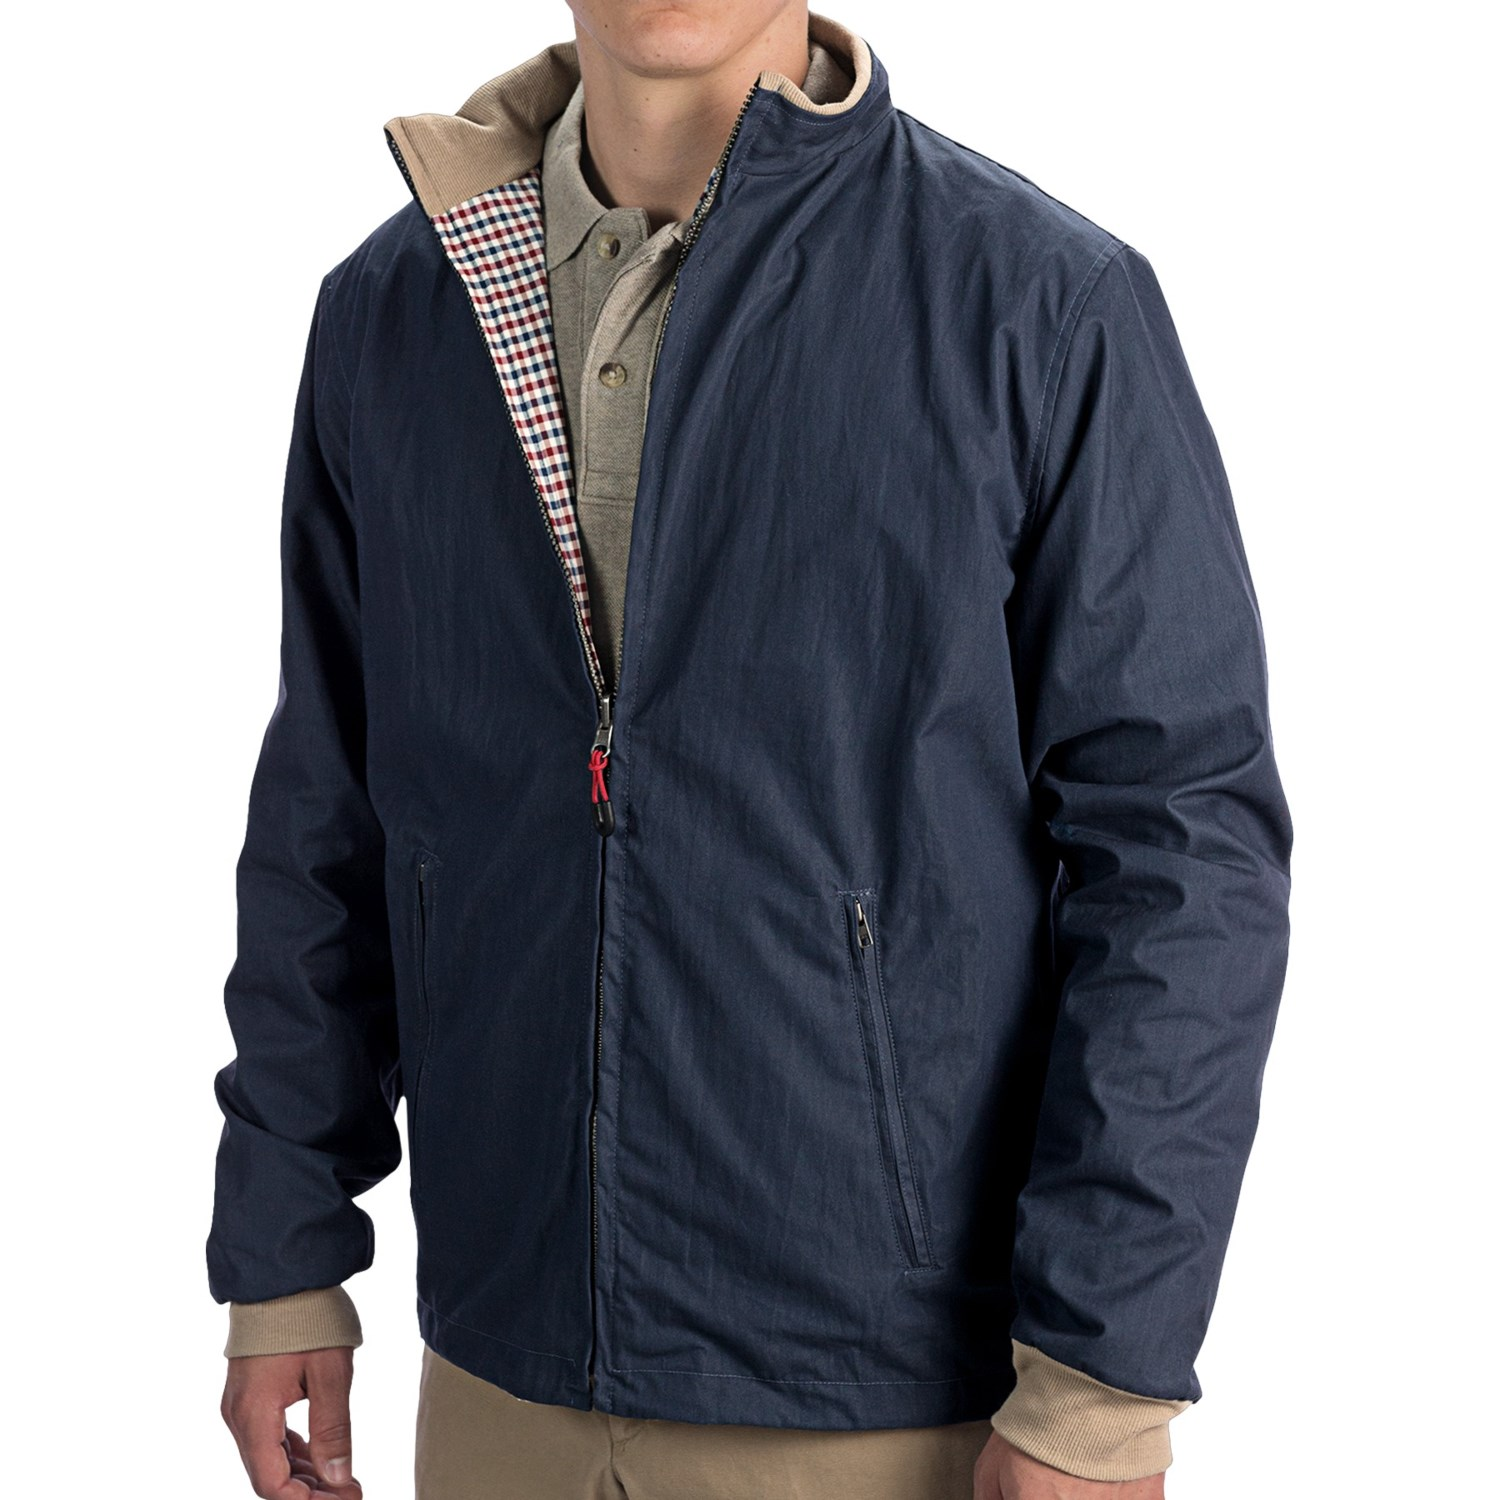 Free shipping BOTH ways on reversible jackets, from our vast selection of styles. Fast delivery, and 24/7/ real-person service with a smile. Click or call